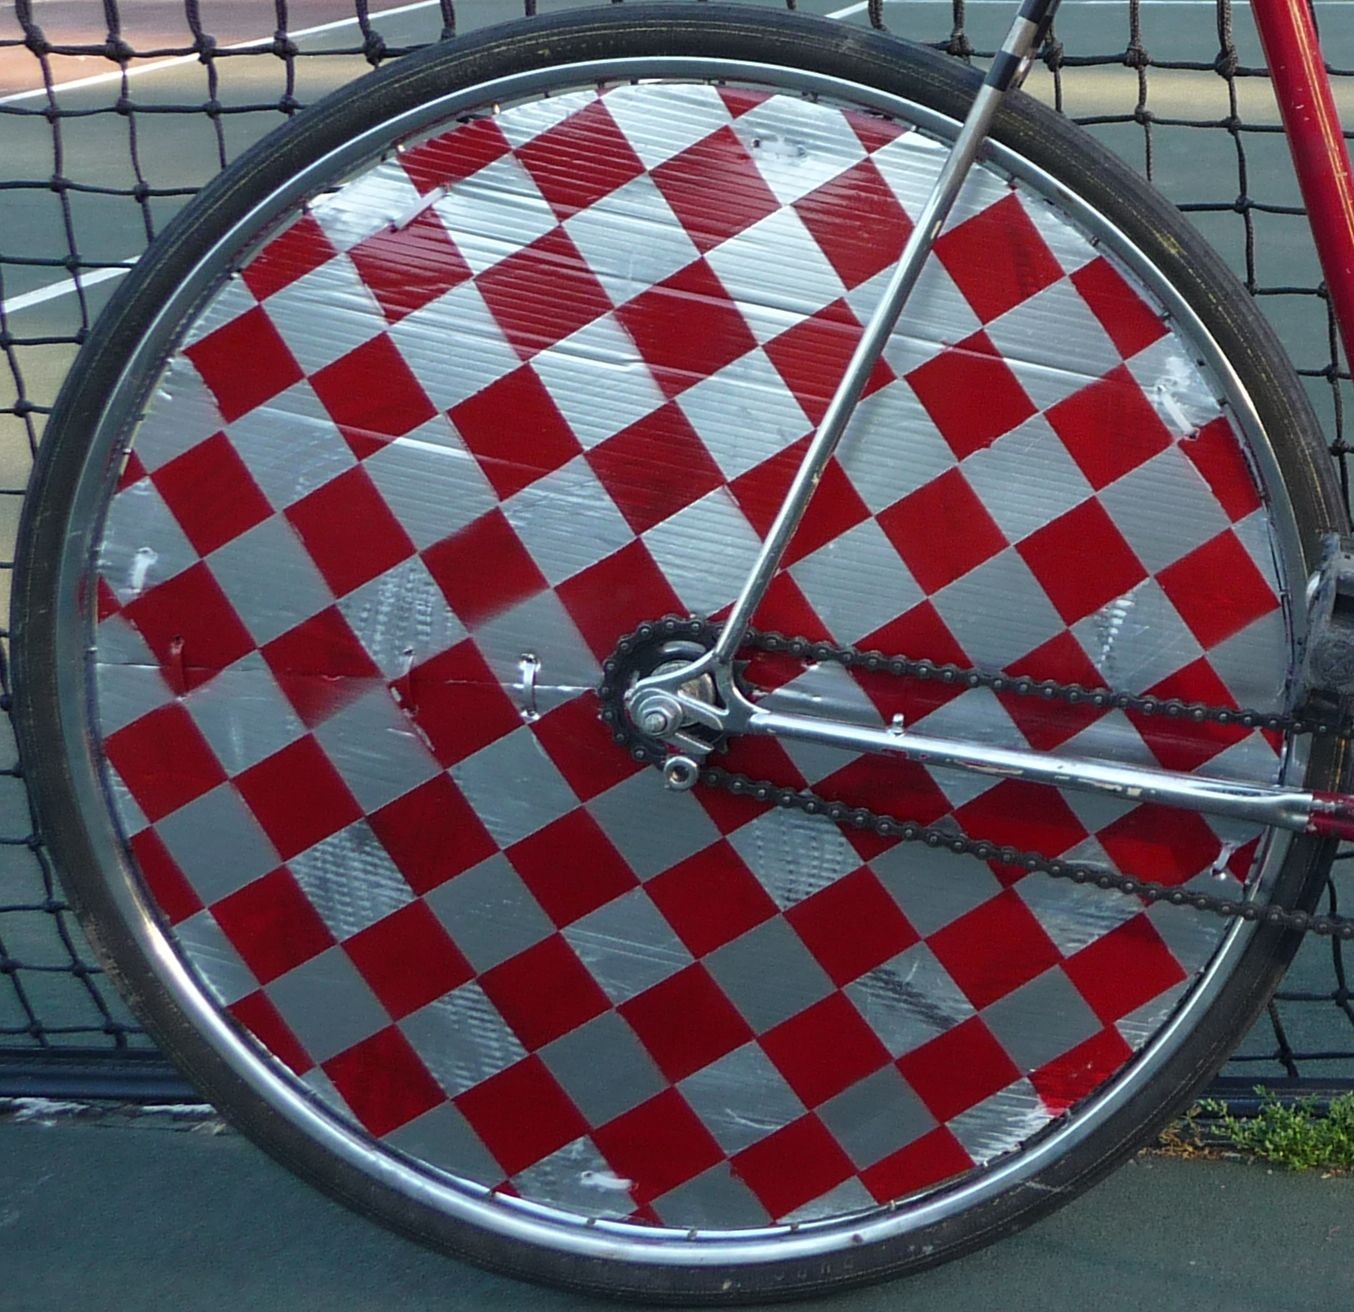 The Plastic Shield Keeps The Ball From Passing Through The Spokes